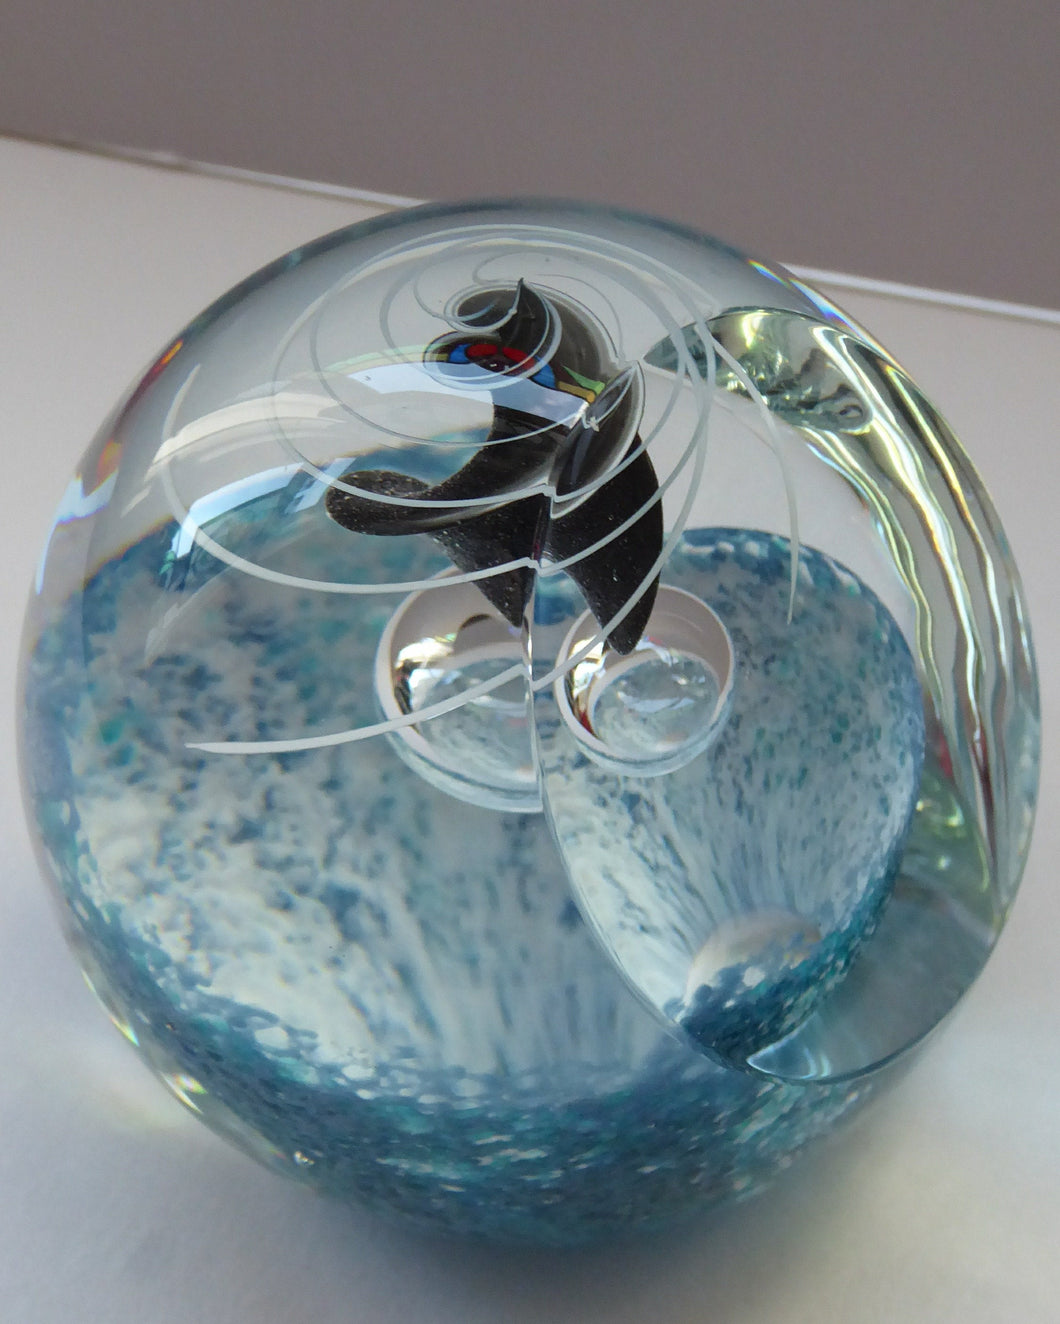 Limited Edition Caithness Glass Paperweight Entitled FREEDOM by Alastair MacIntosh. 1990